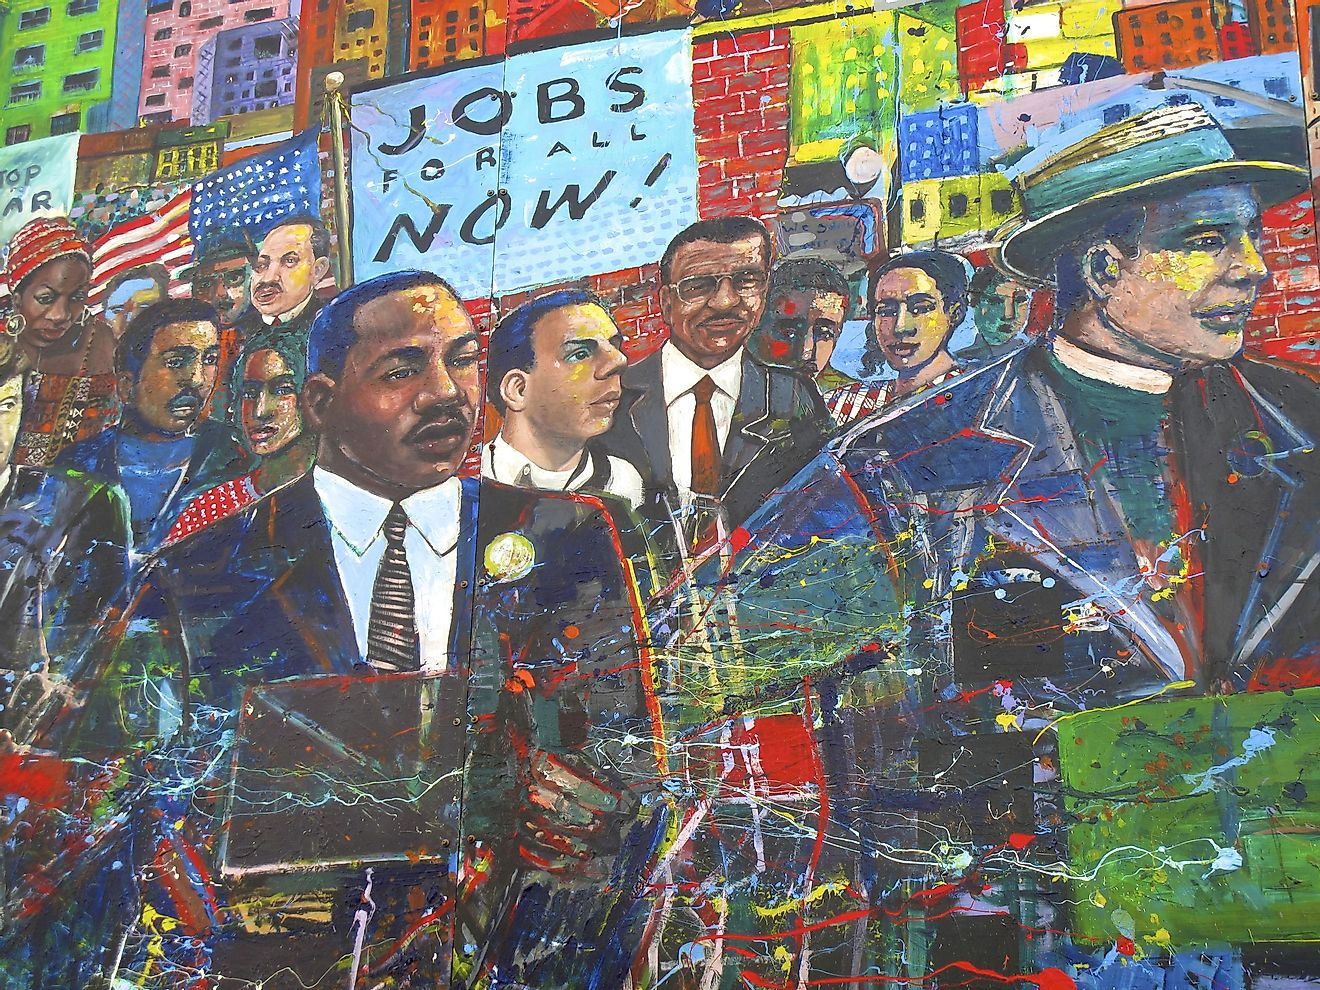 Atlanta, Georgia, USA - October 9, 2014: Martin Luther King Jr. Mural at the National Historic Site in Atlanta, GA. Image credit: Forty3Zero / Shutterstock.com